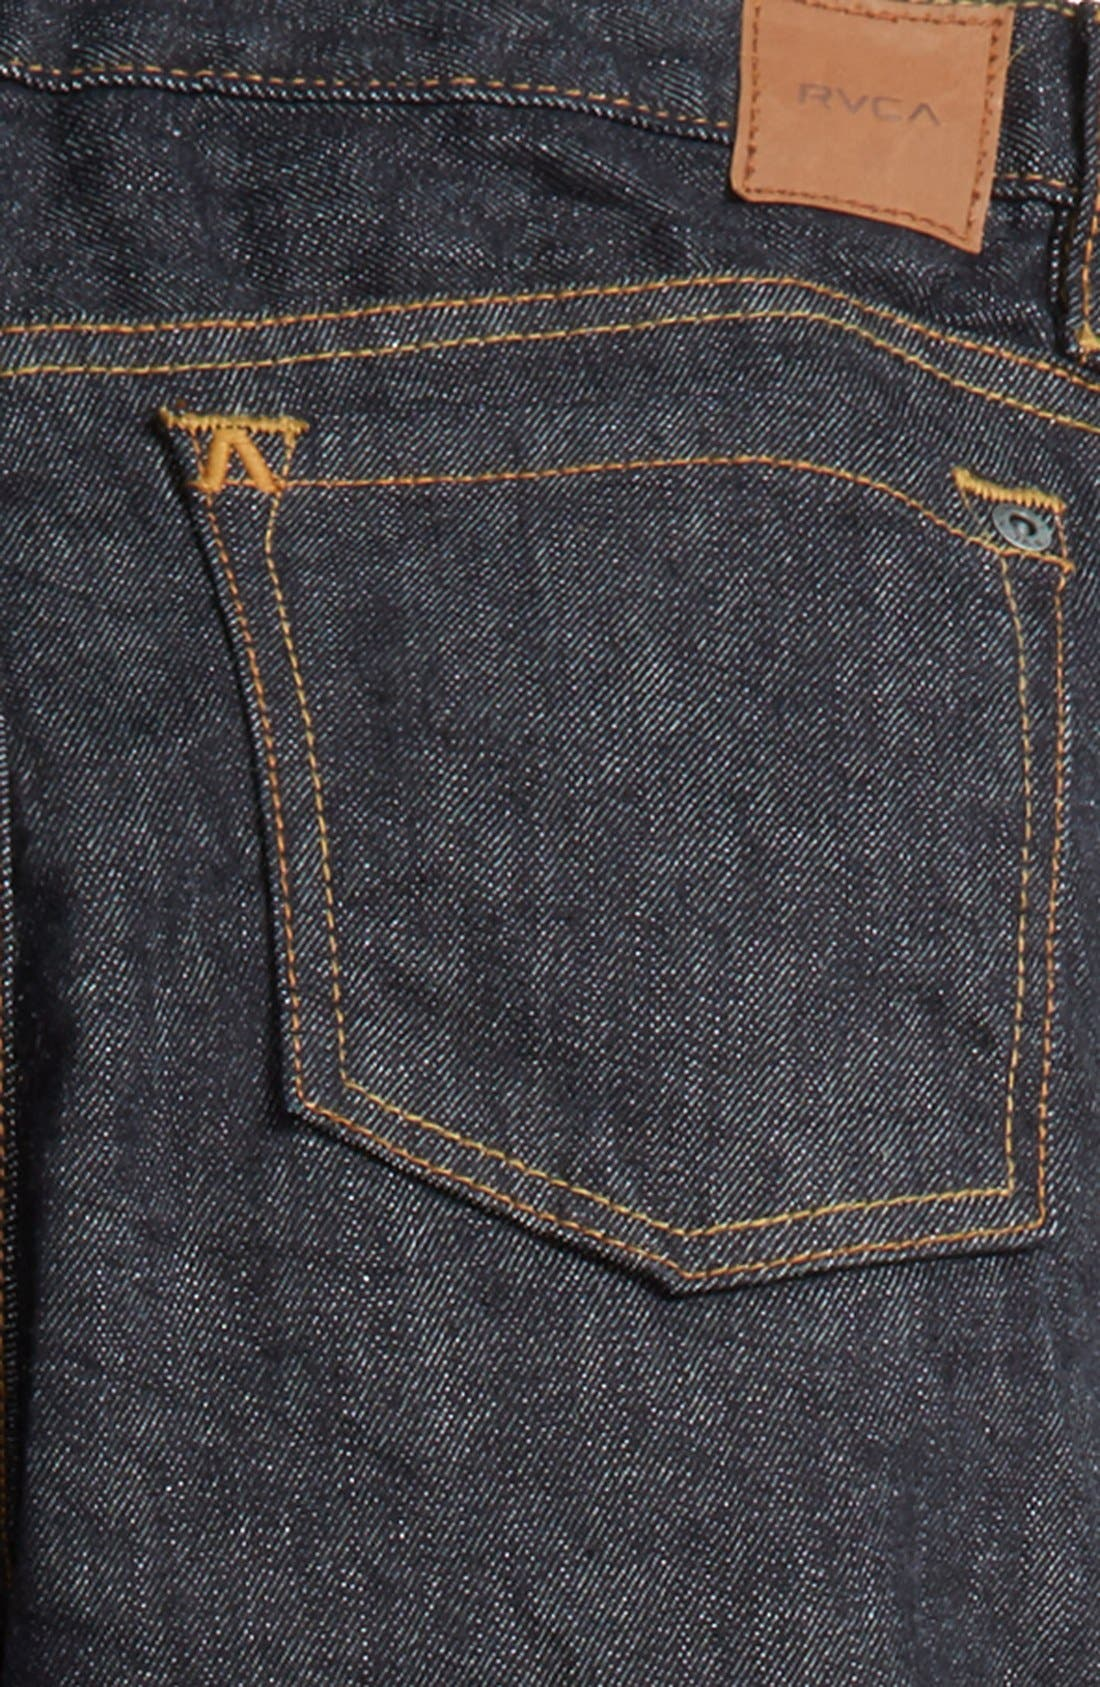 'Daggers' Slim Fit Jeans,                             Alternate thumbnail 3, color,                             Deep Indigo